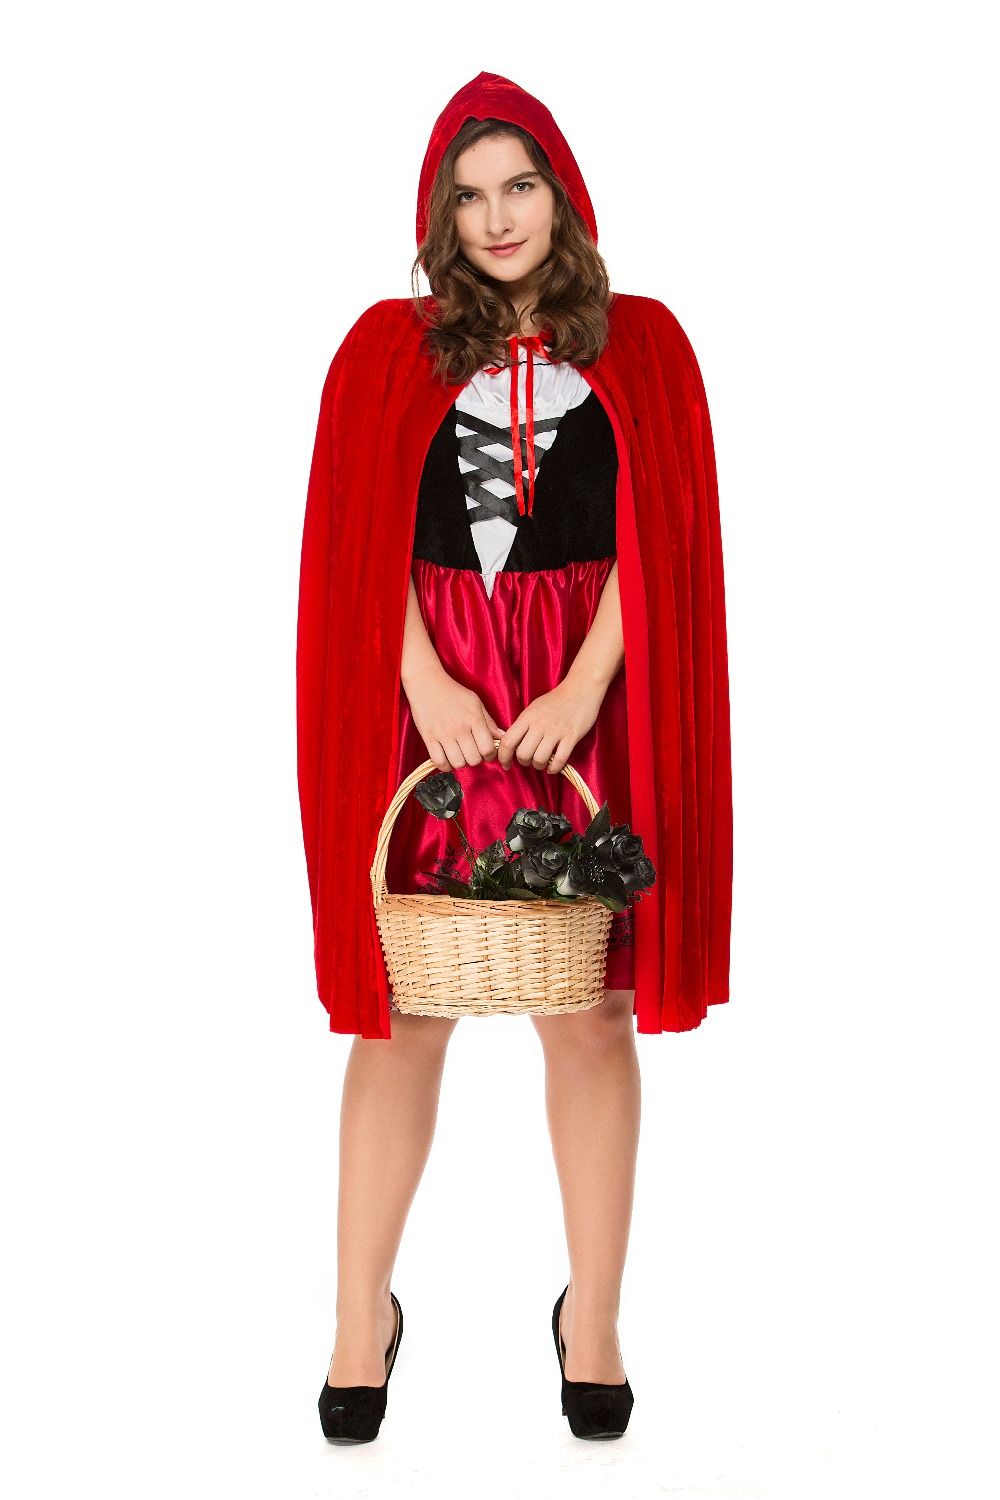 Plus Size Adult Women Halloween Costume Little Red Riding Hooded Robe Lady Embroidery Dress Party Cloak Outfit A003